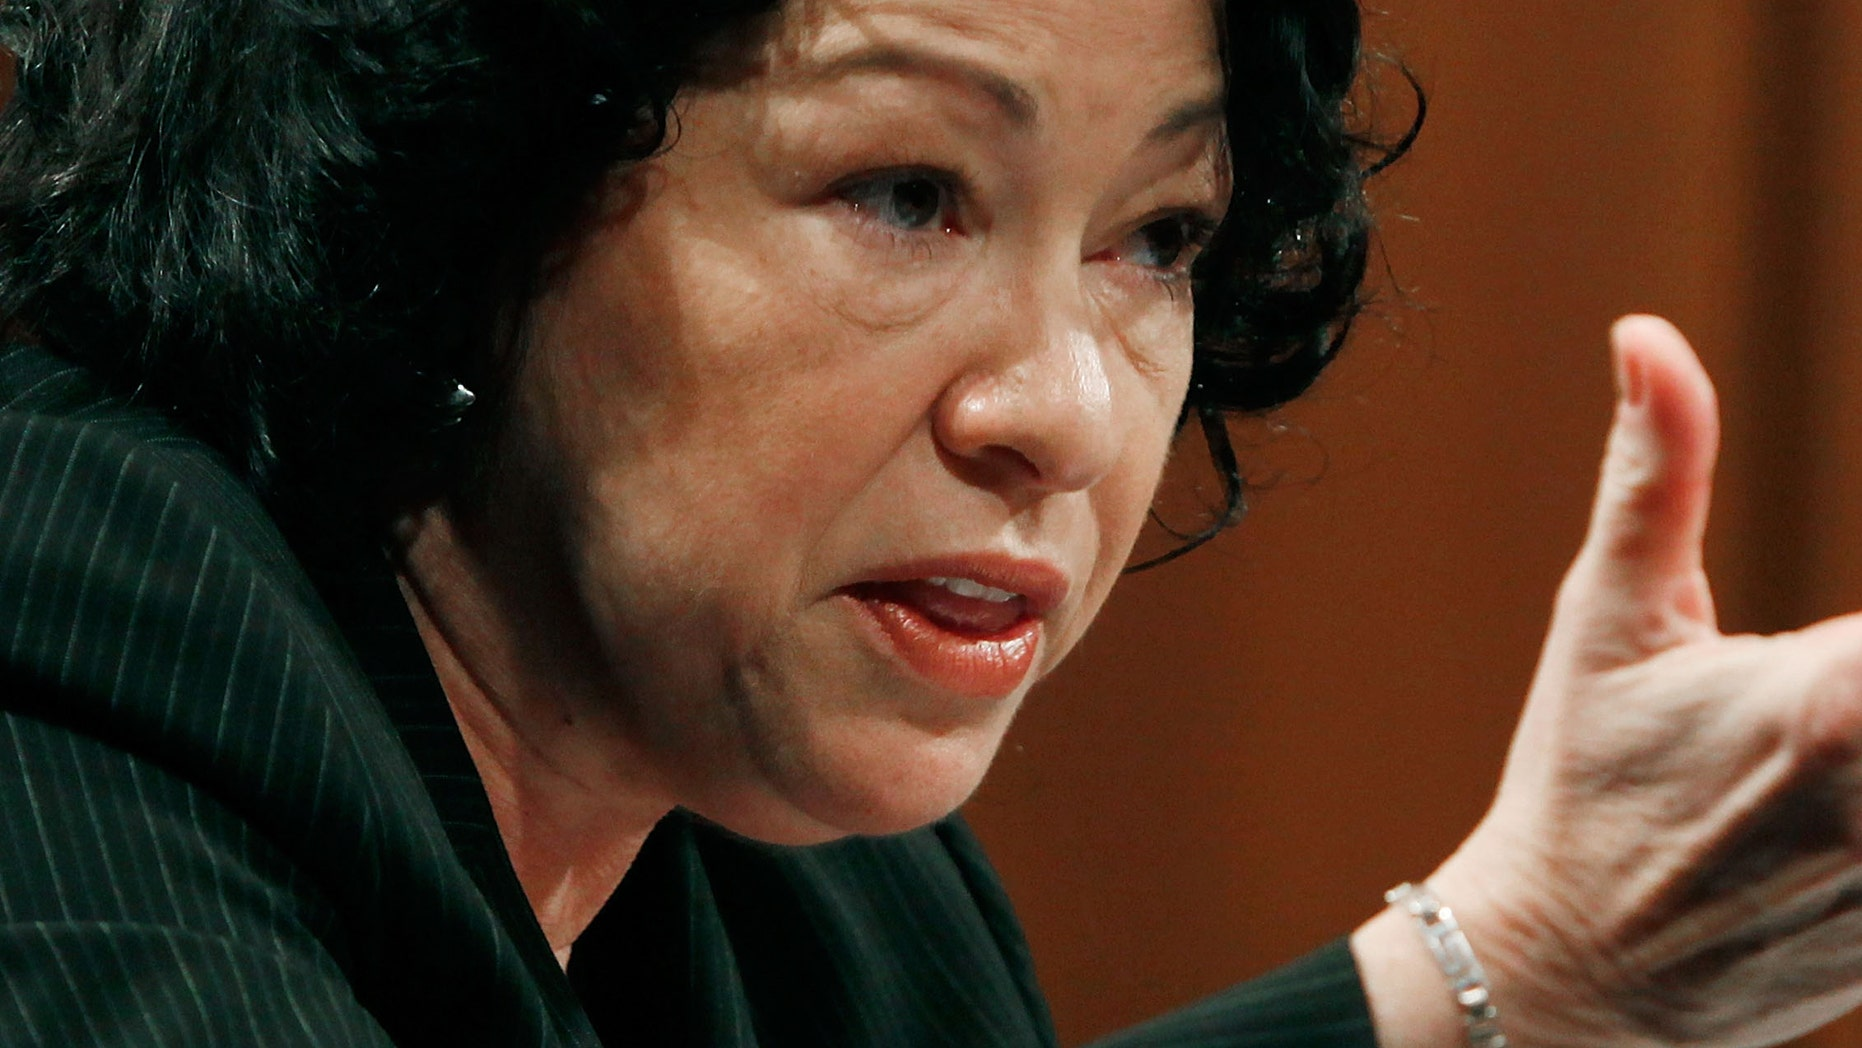 from Titan sonia sotomayor gay issues